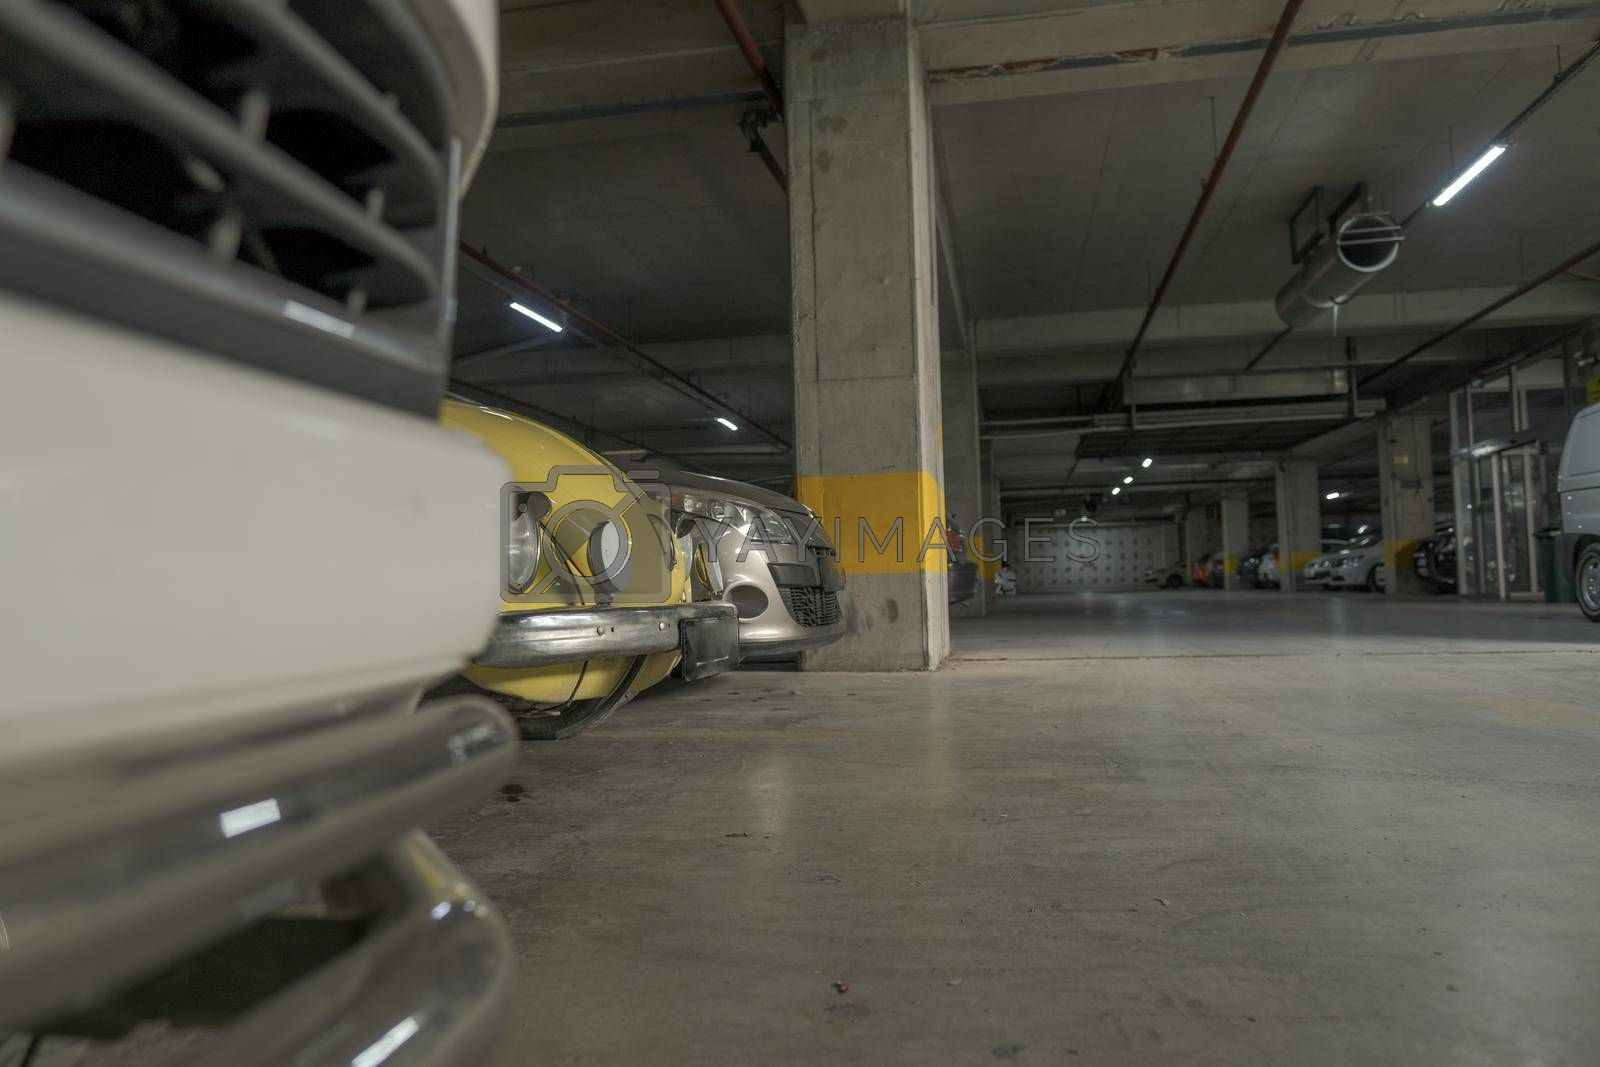 horizontal view of a car garage and some cars positioned in line